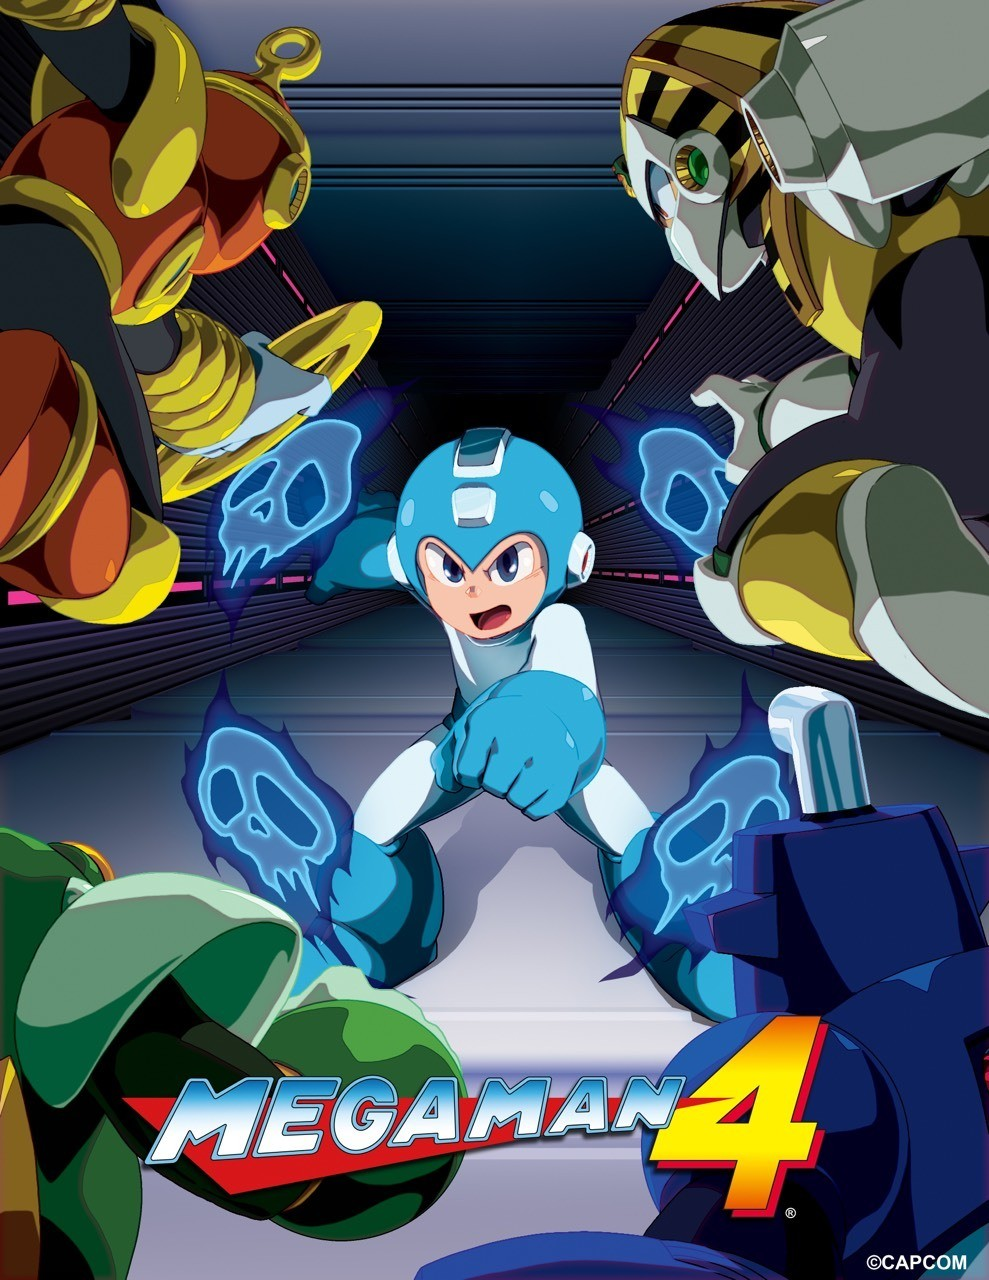 Mega Man IV - Official art from the Mega Man Legacy Collection game.